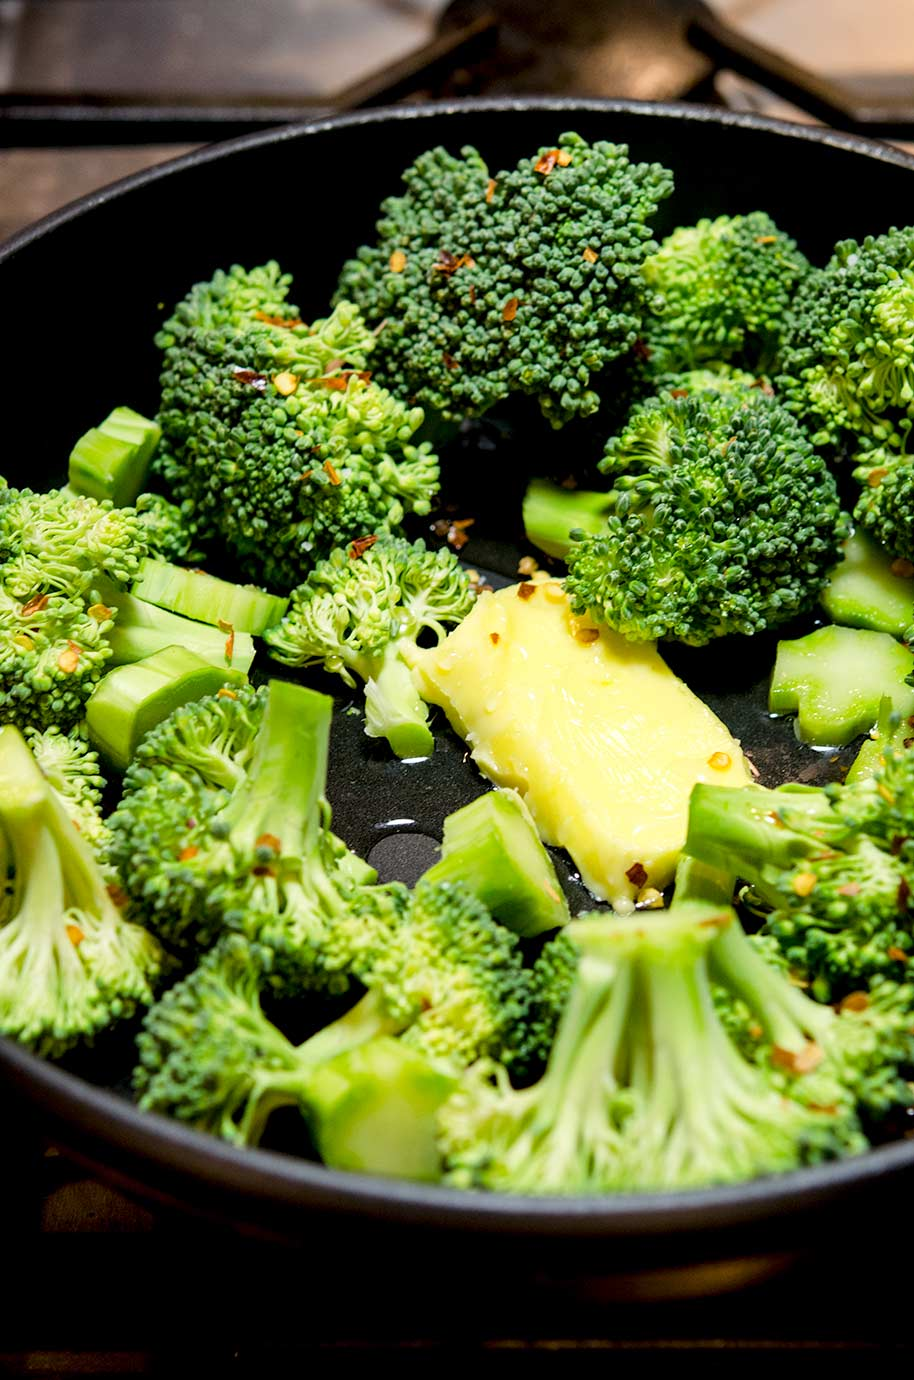 To prepare this Italian Broccoli Recipe, first add all the ingredients into the pan, including the red pepper flakes, garlic, butter and water.